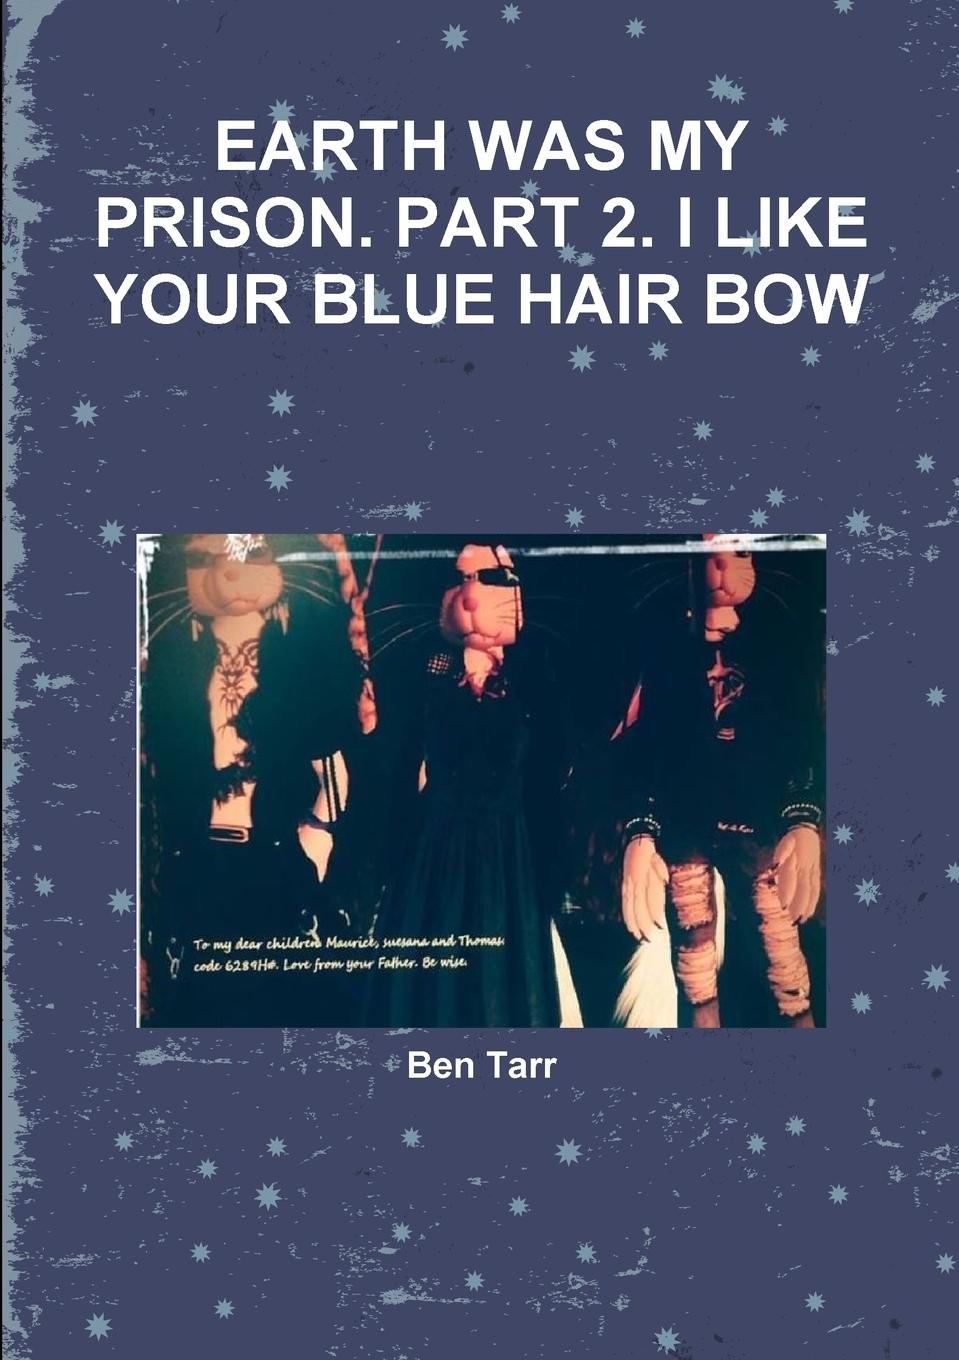 Ben Tarr EARTH WAS MY PRISON. PART 2. I LIKE YOUR BLUE HAIR BOW who was maurice sendak